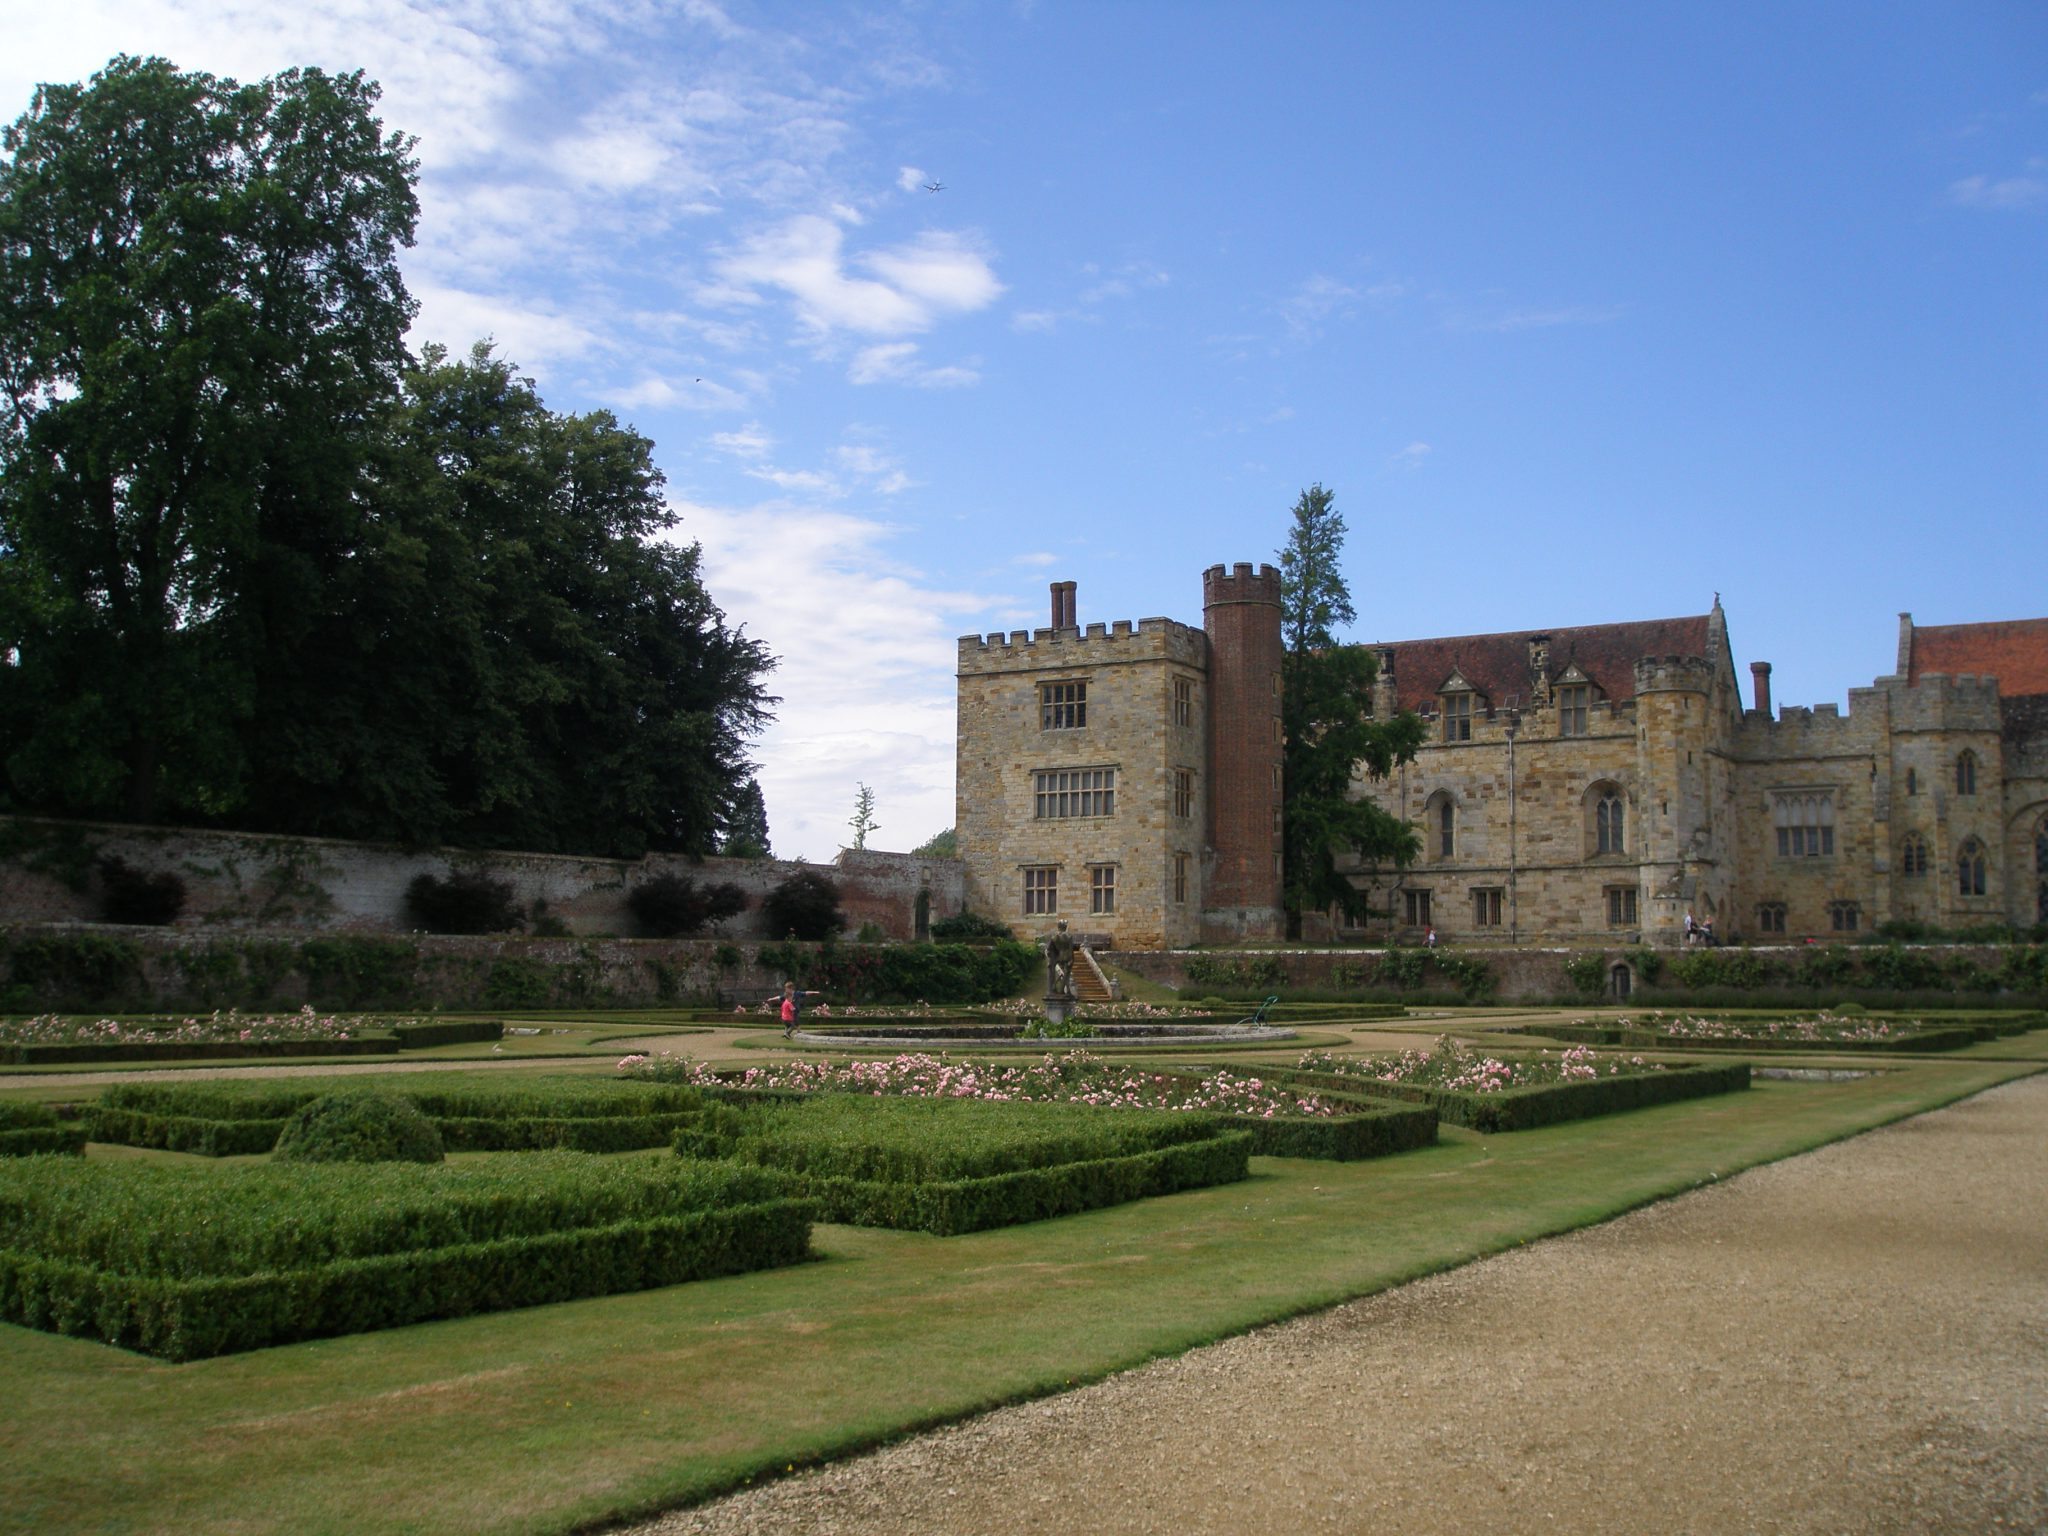 Our first view of the Italian Garden, or Parterre Garden, and the south face of the House. Sir Henry Sidney built the Italian Garden in the 1560s.